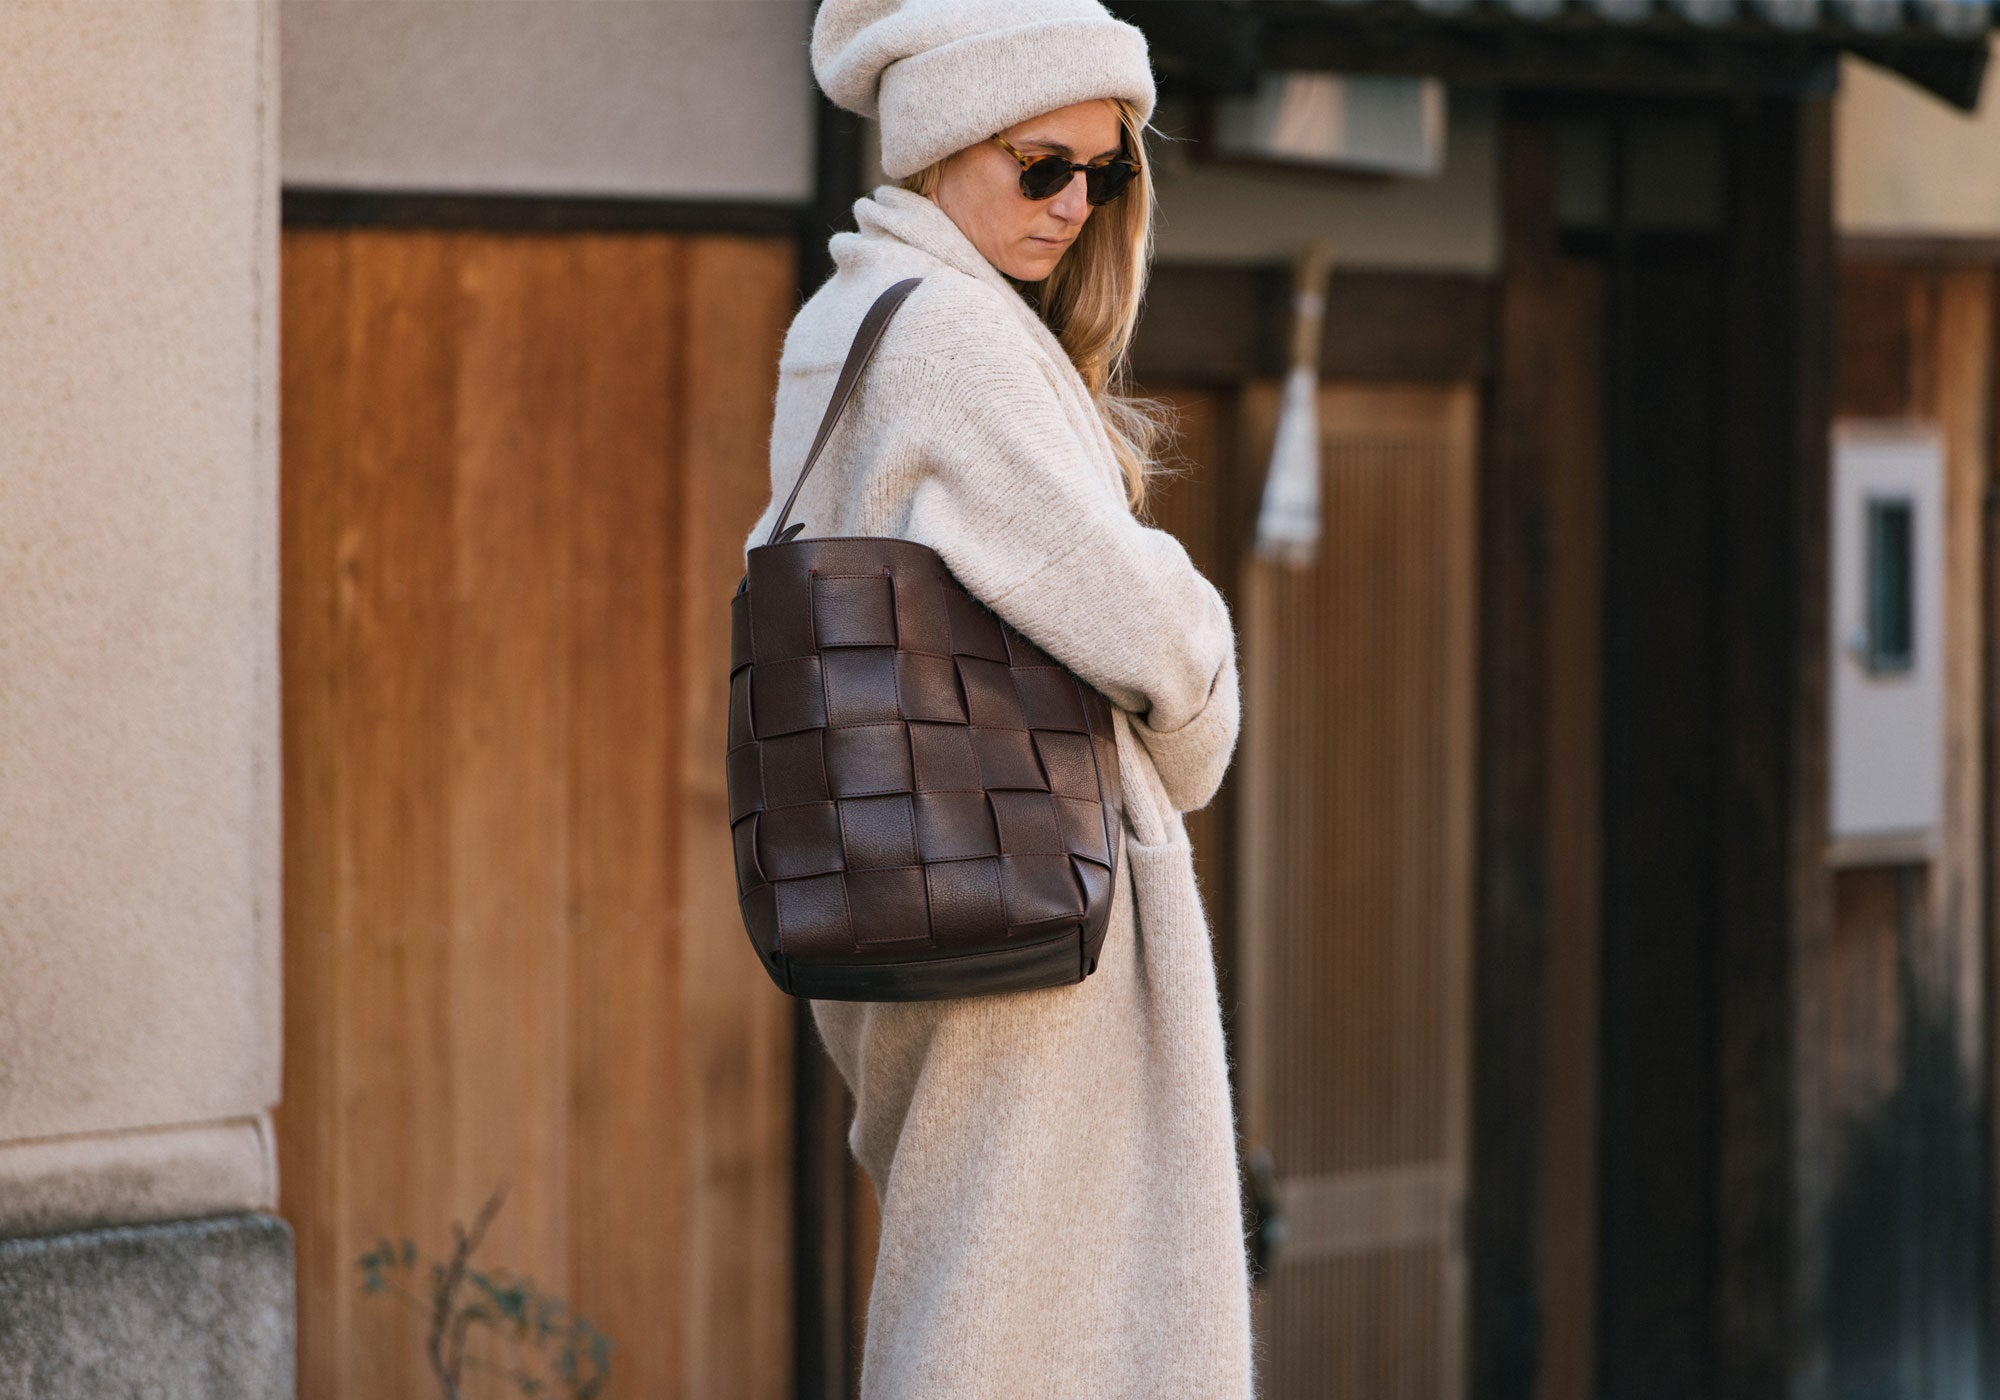 Woven Leather Bucket Shoulder Bag Lifestyle